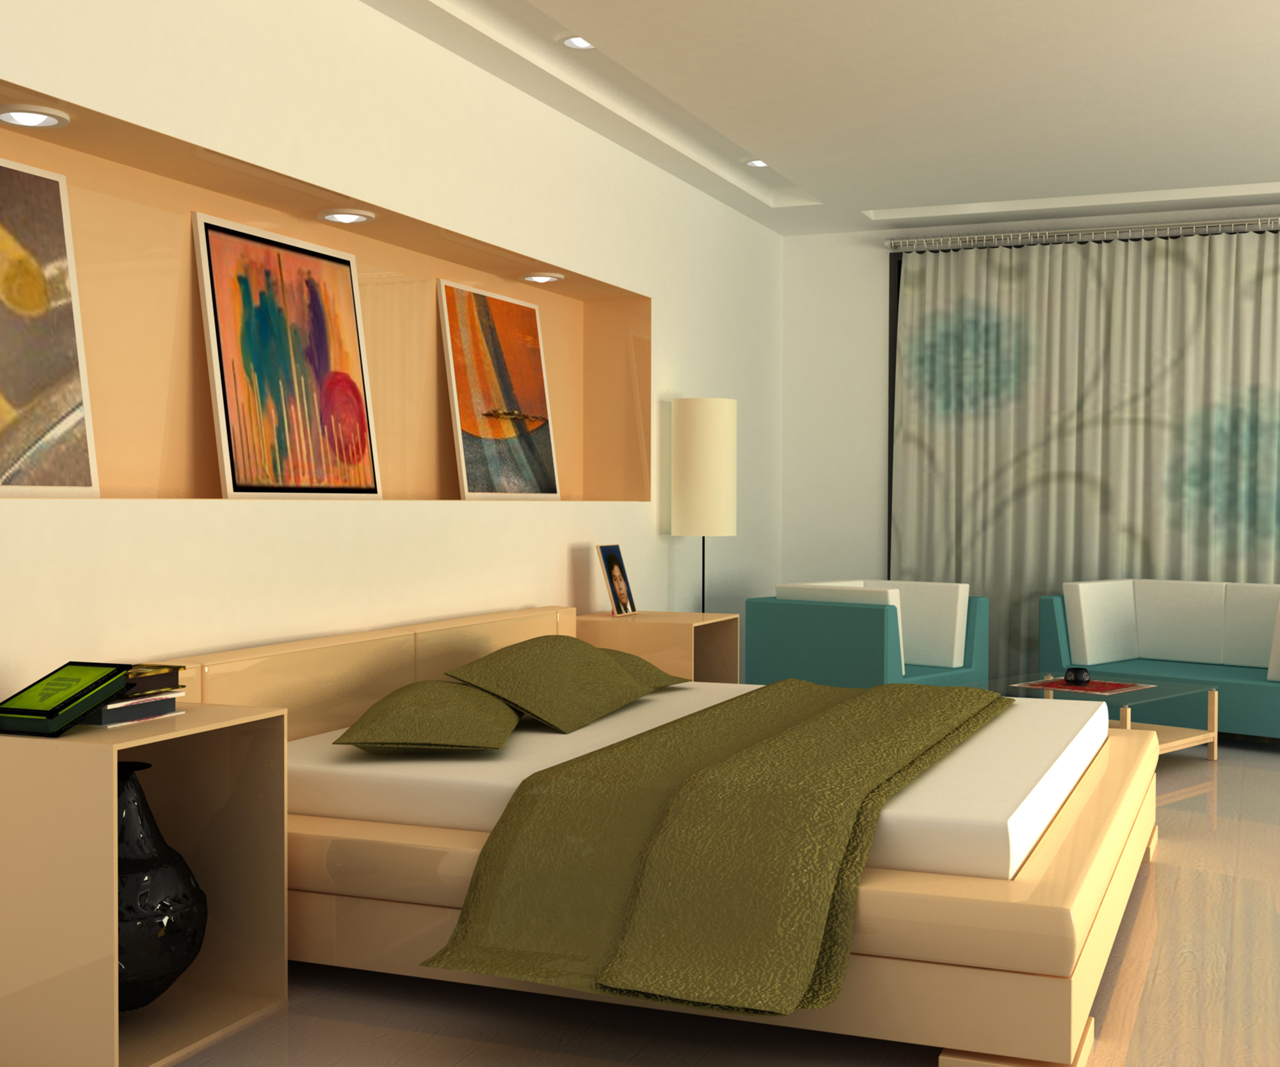 Remarkable 3D Small Bedroom Design 1280 x 1067 · 633 kB · jpeg